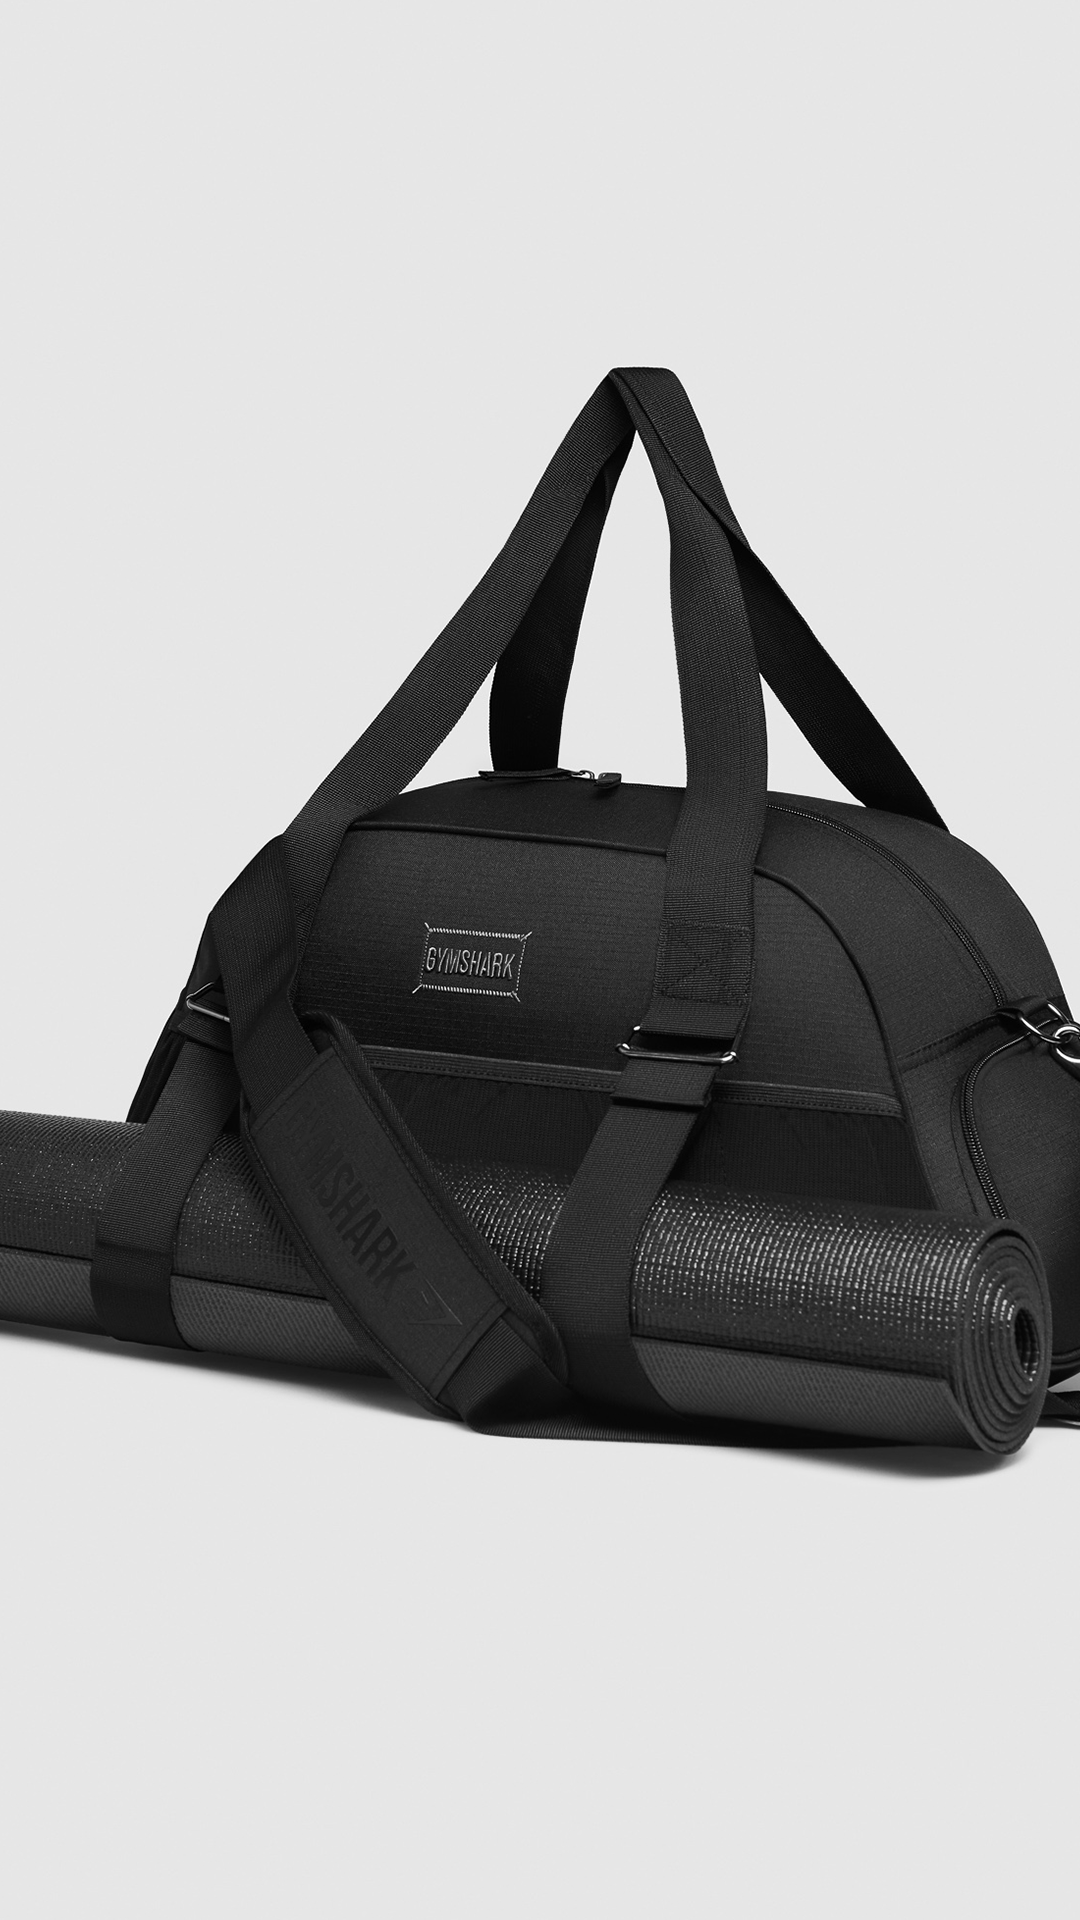 d08aaa7f85  Gymshark  Accessories  Bag  Gym  Fitness  Workout  Exercise  Black   Monochrome  Holdall